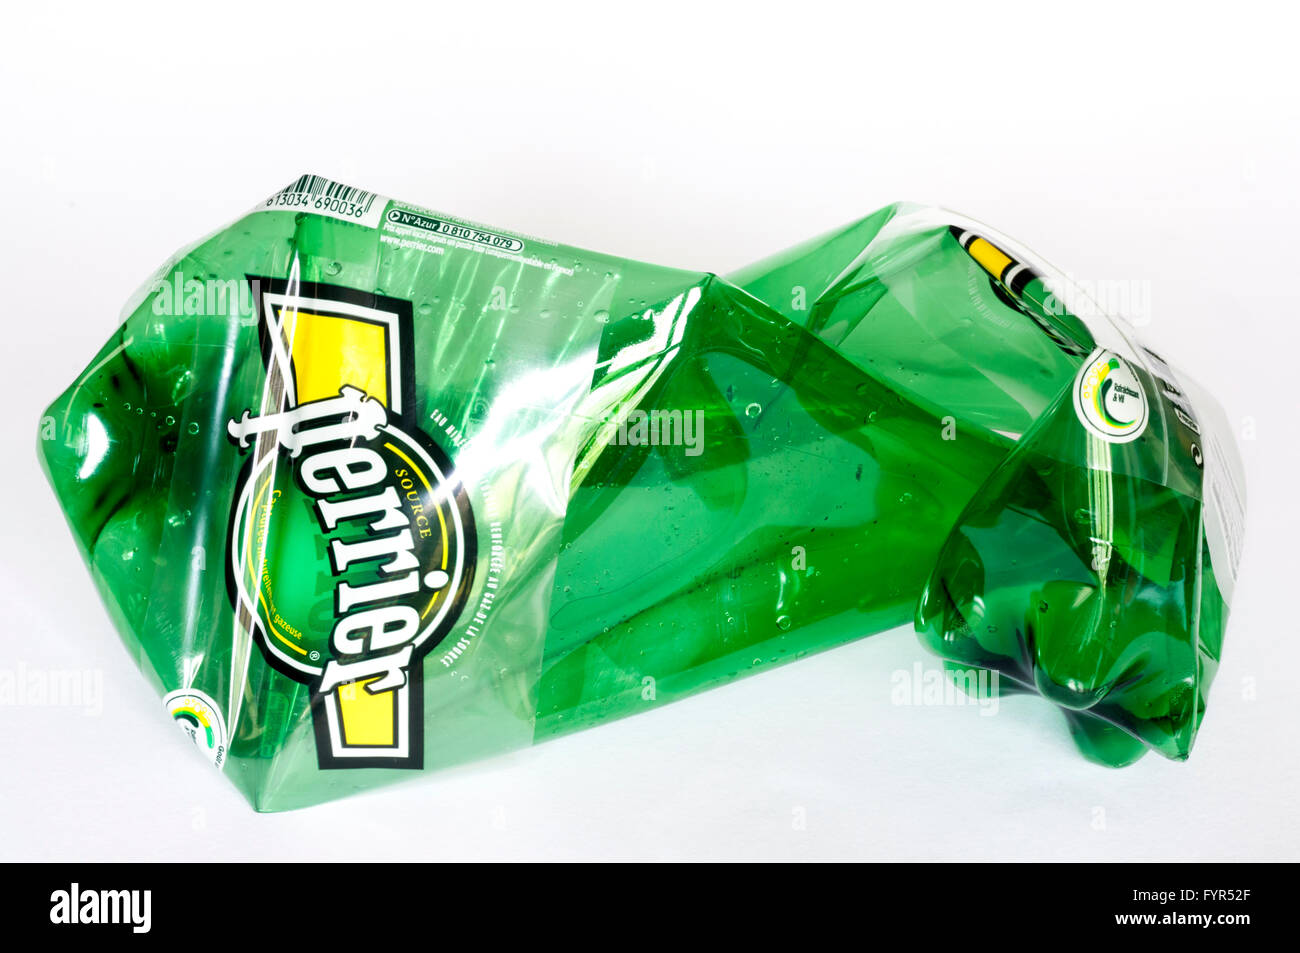 In France, Perrier mineral water is now sold in plastic bottles. - Stock Image